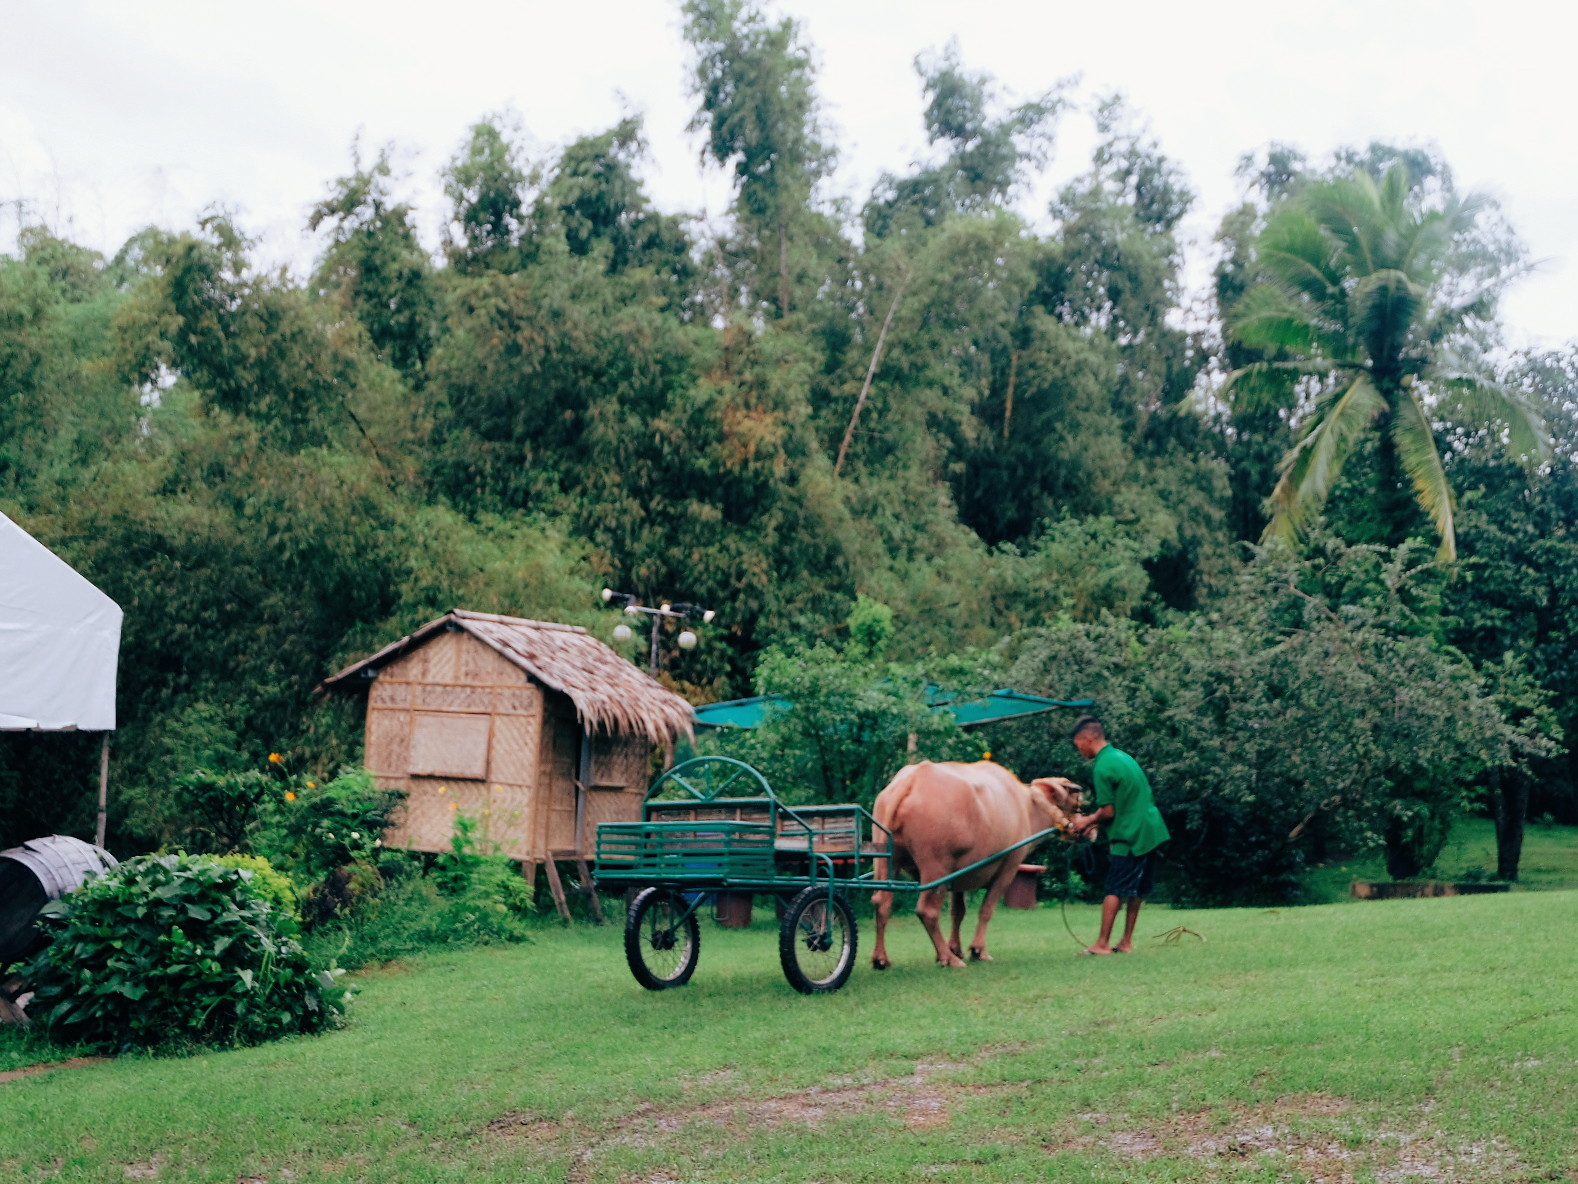 Staycation at Terra Verde EcoFarm: Agri-Tourism Farm